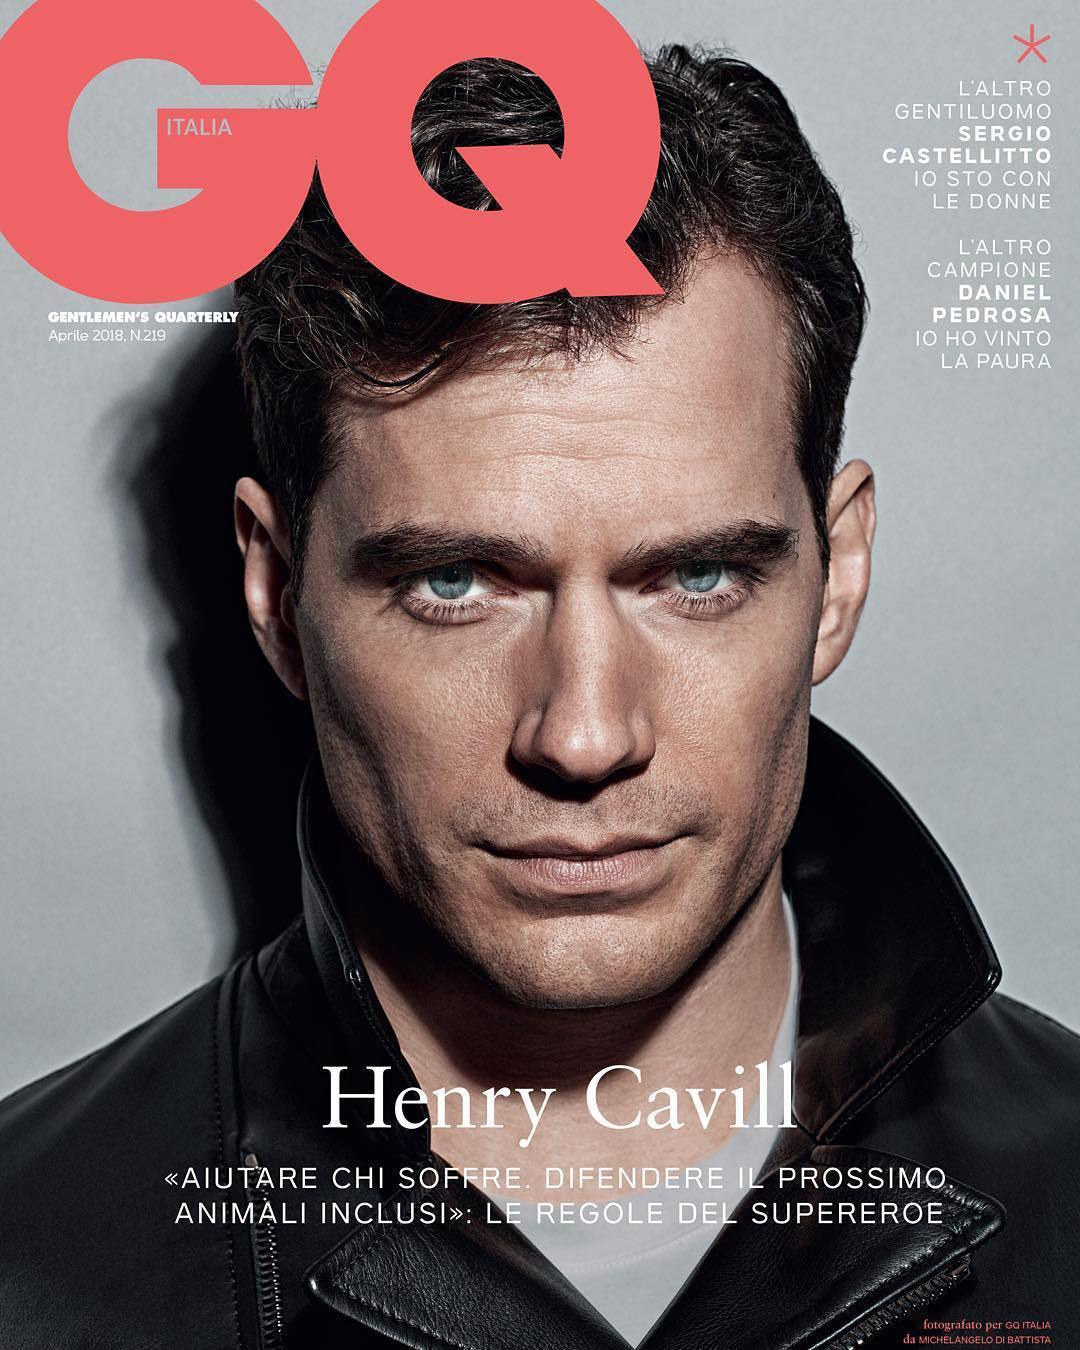 GQ Cover April 2018 x Henry Cavill | Michelangelo di Battista | GQ Italia | Nicolò Andreoni | Numerique Retouch Photo Retouching Studio